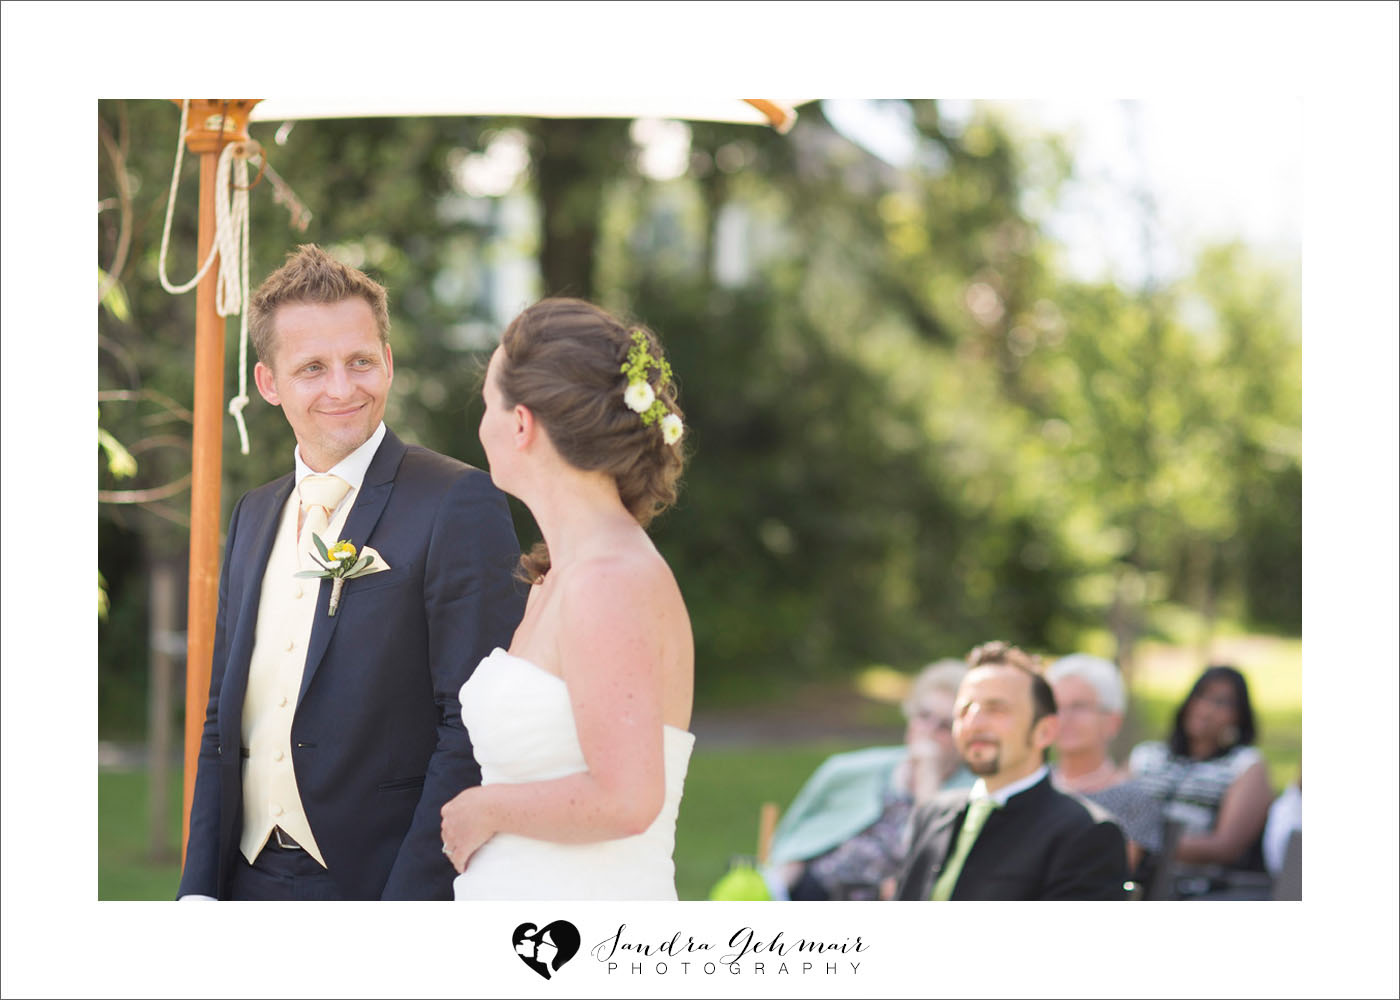 029_heiraten_am_see_spitzvilla_sandra_gehmair